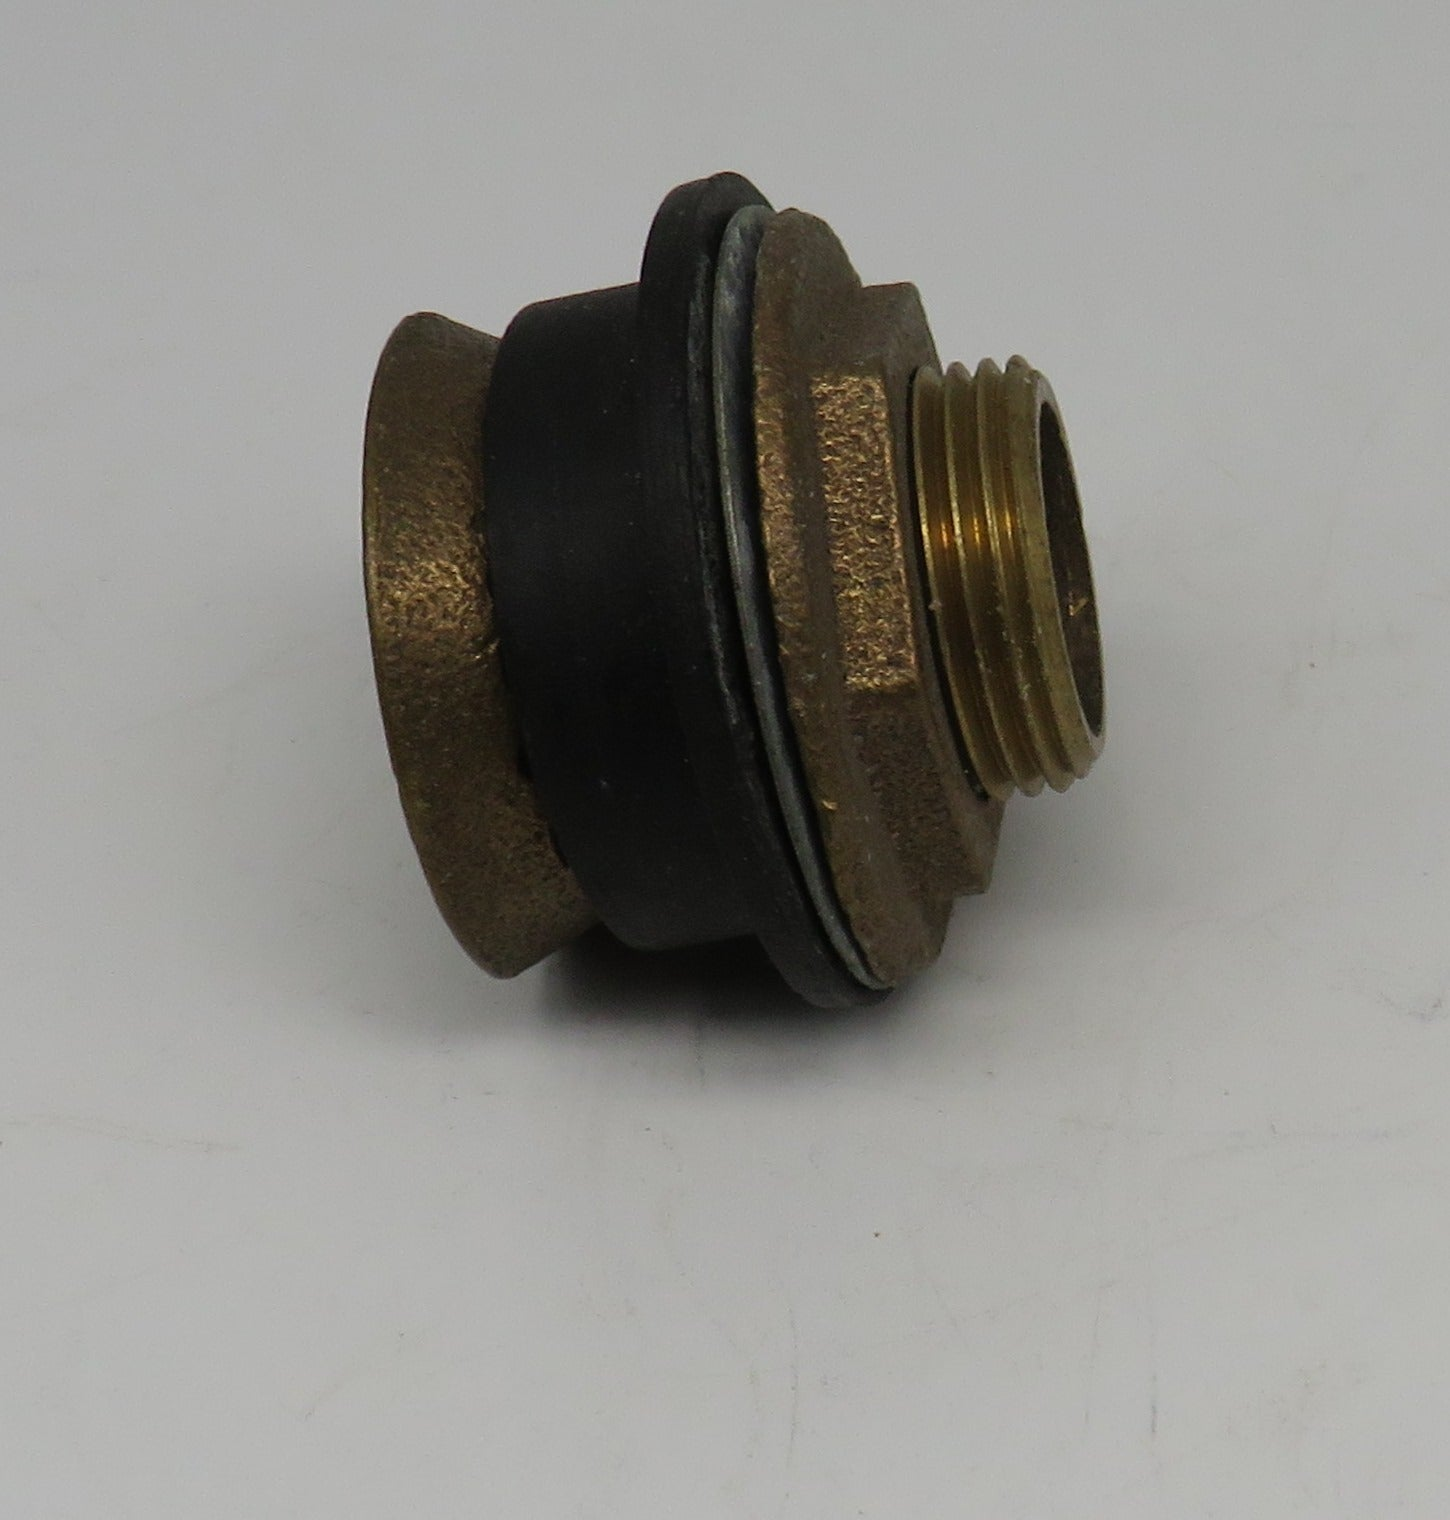 348260 Sealand Spud for Model 752 Manual Marine Toilet (OBSOLETE)